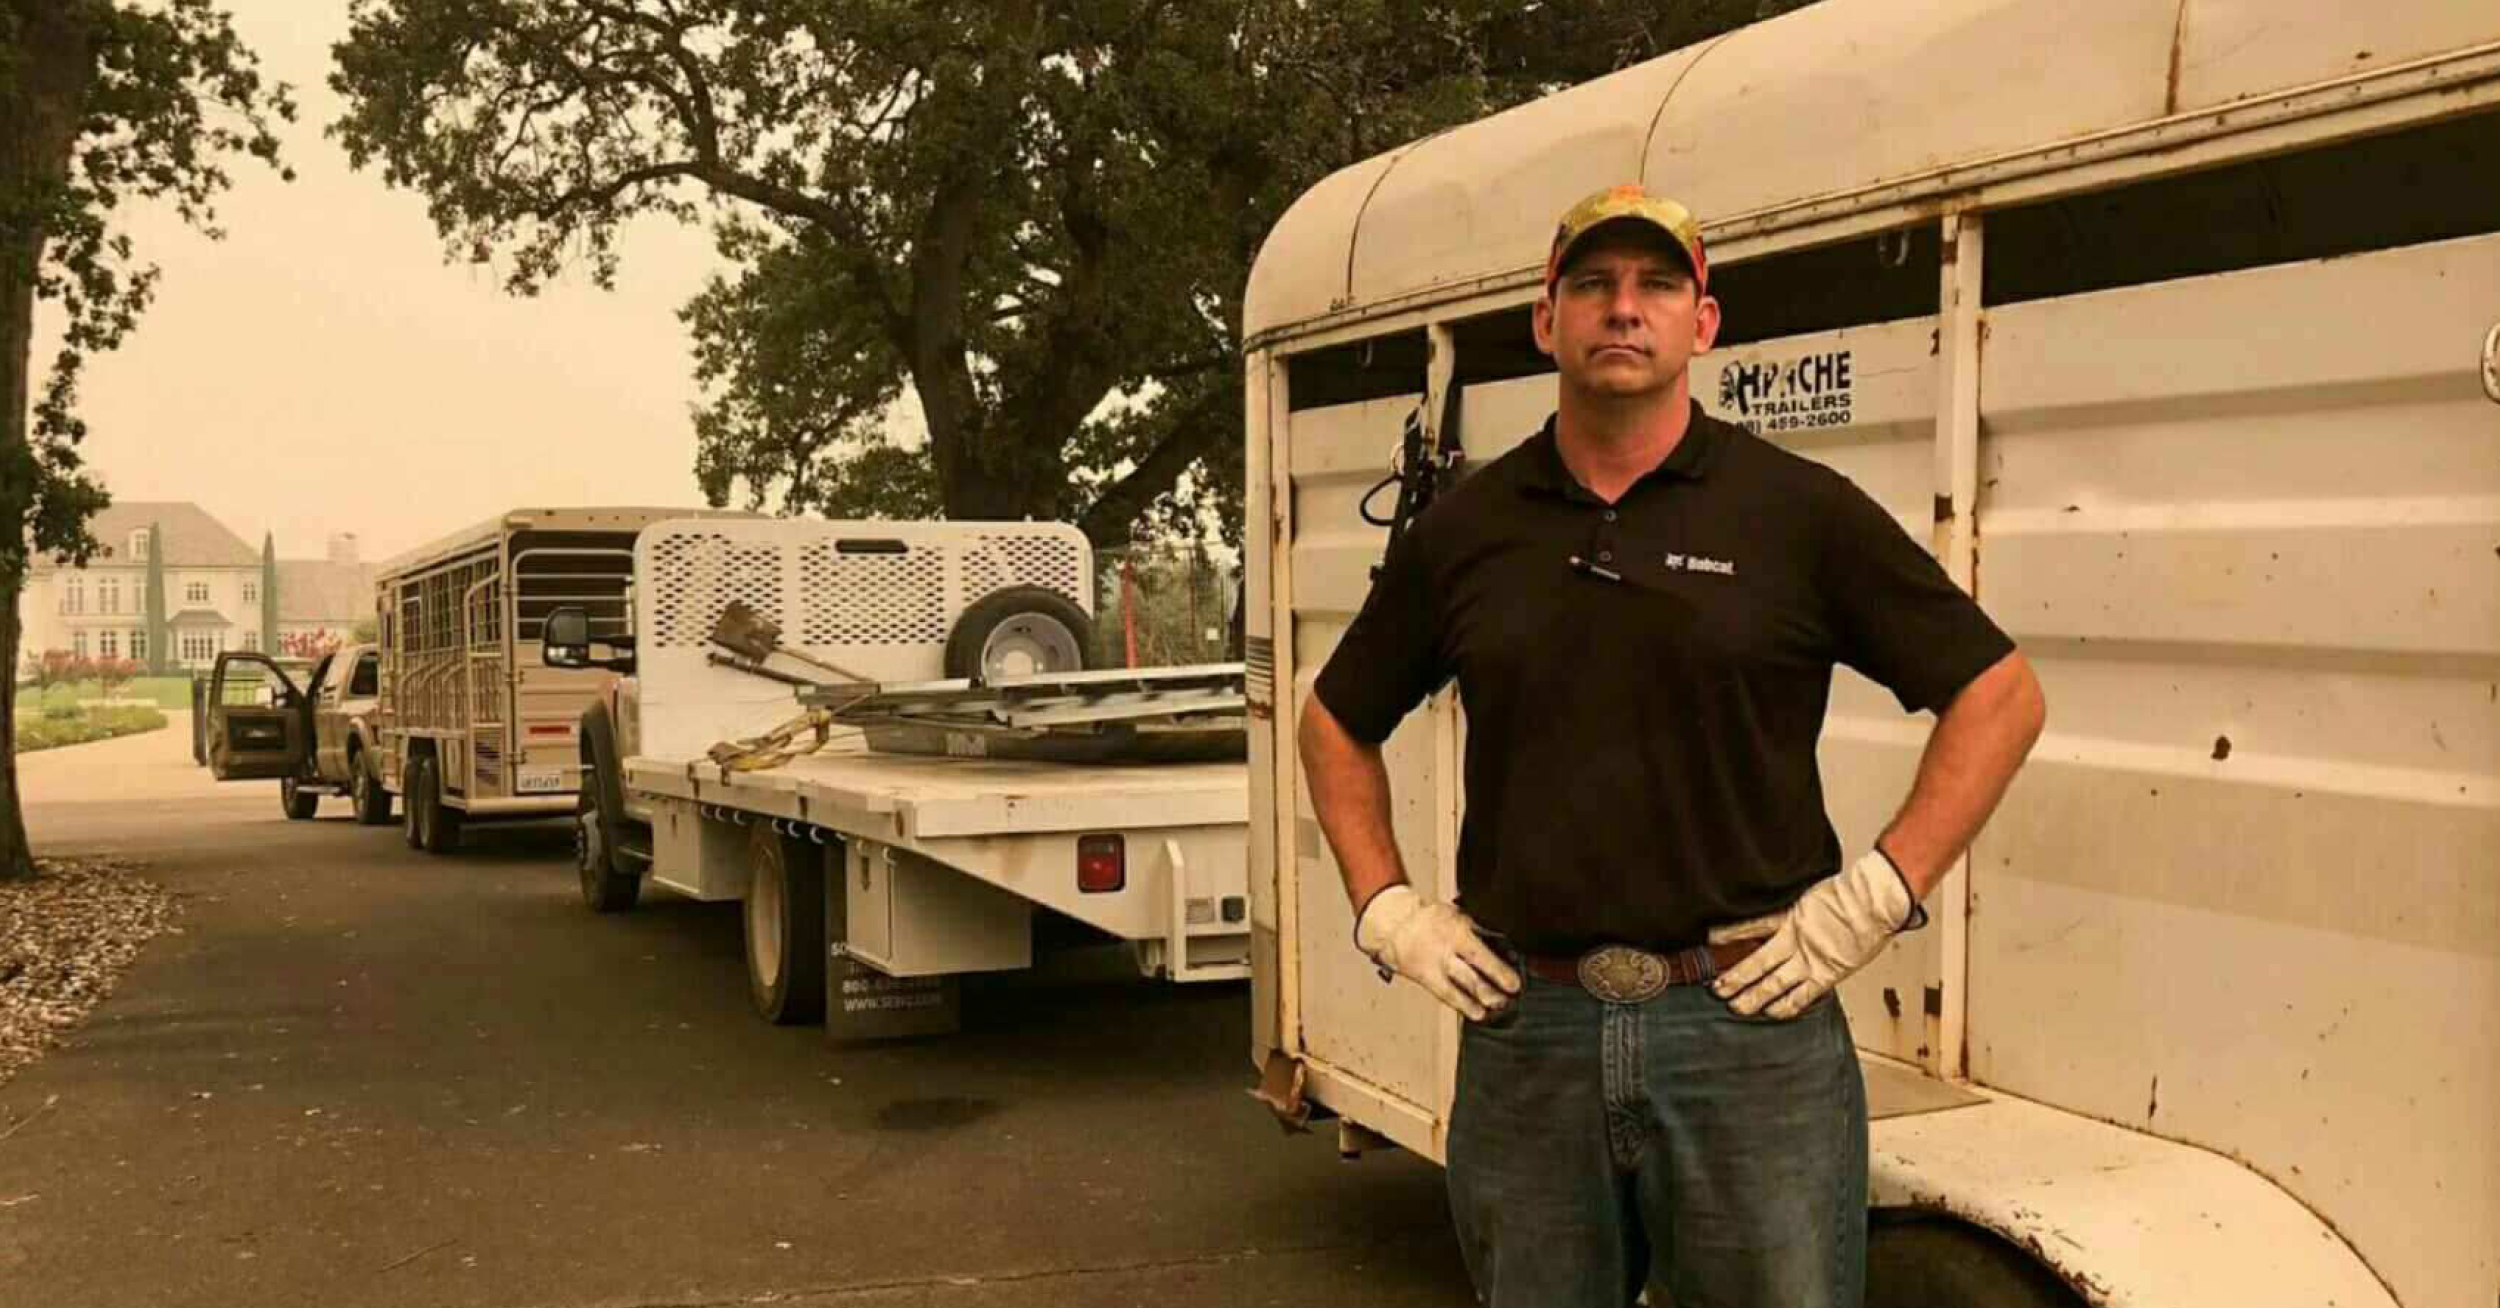 Bobcat of Redding sales specialist Tucker Zimmerman used a truck and trailer to help evacuate animals when the Carr fire threatened the community.